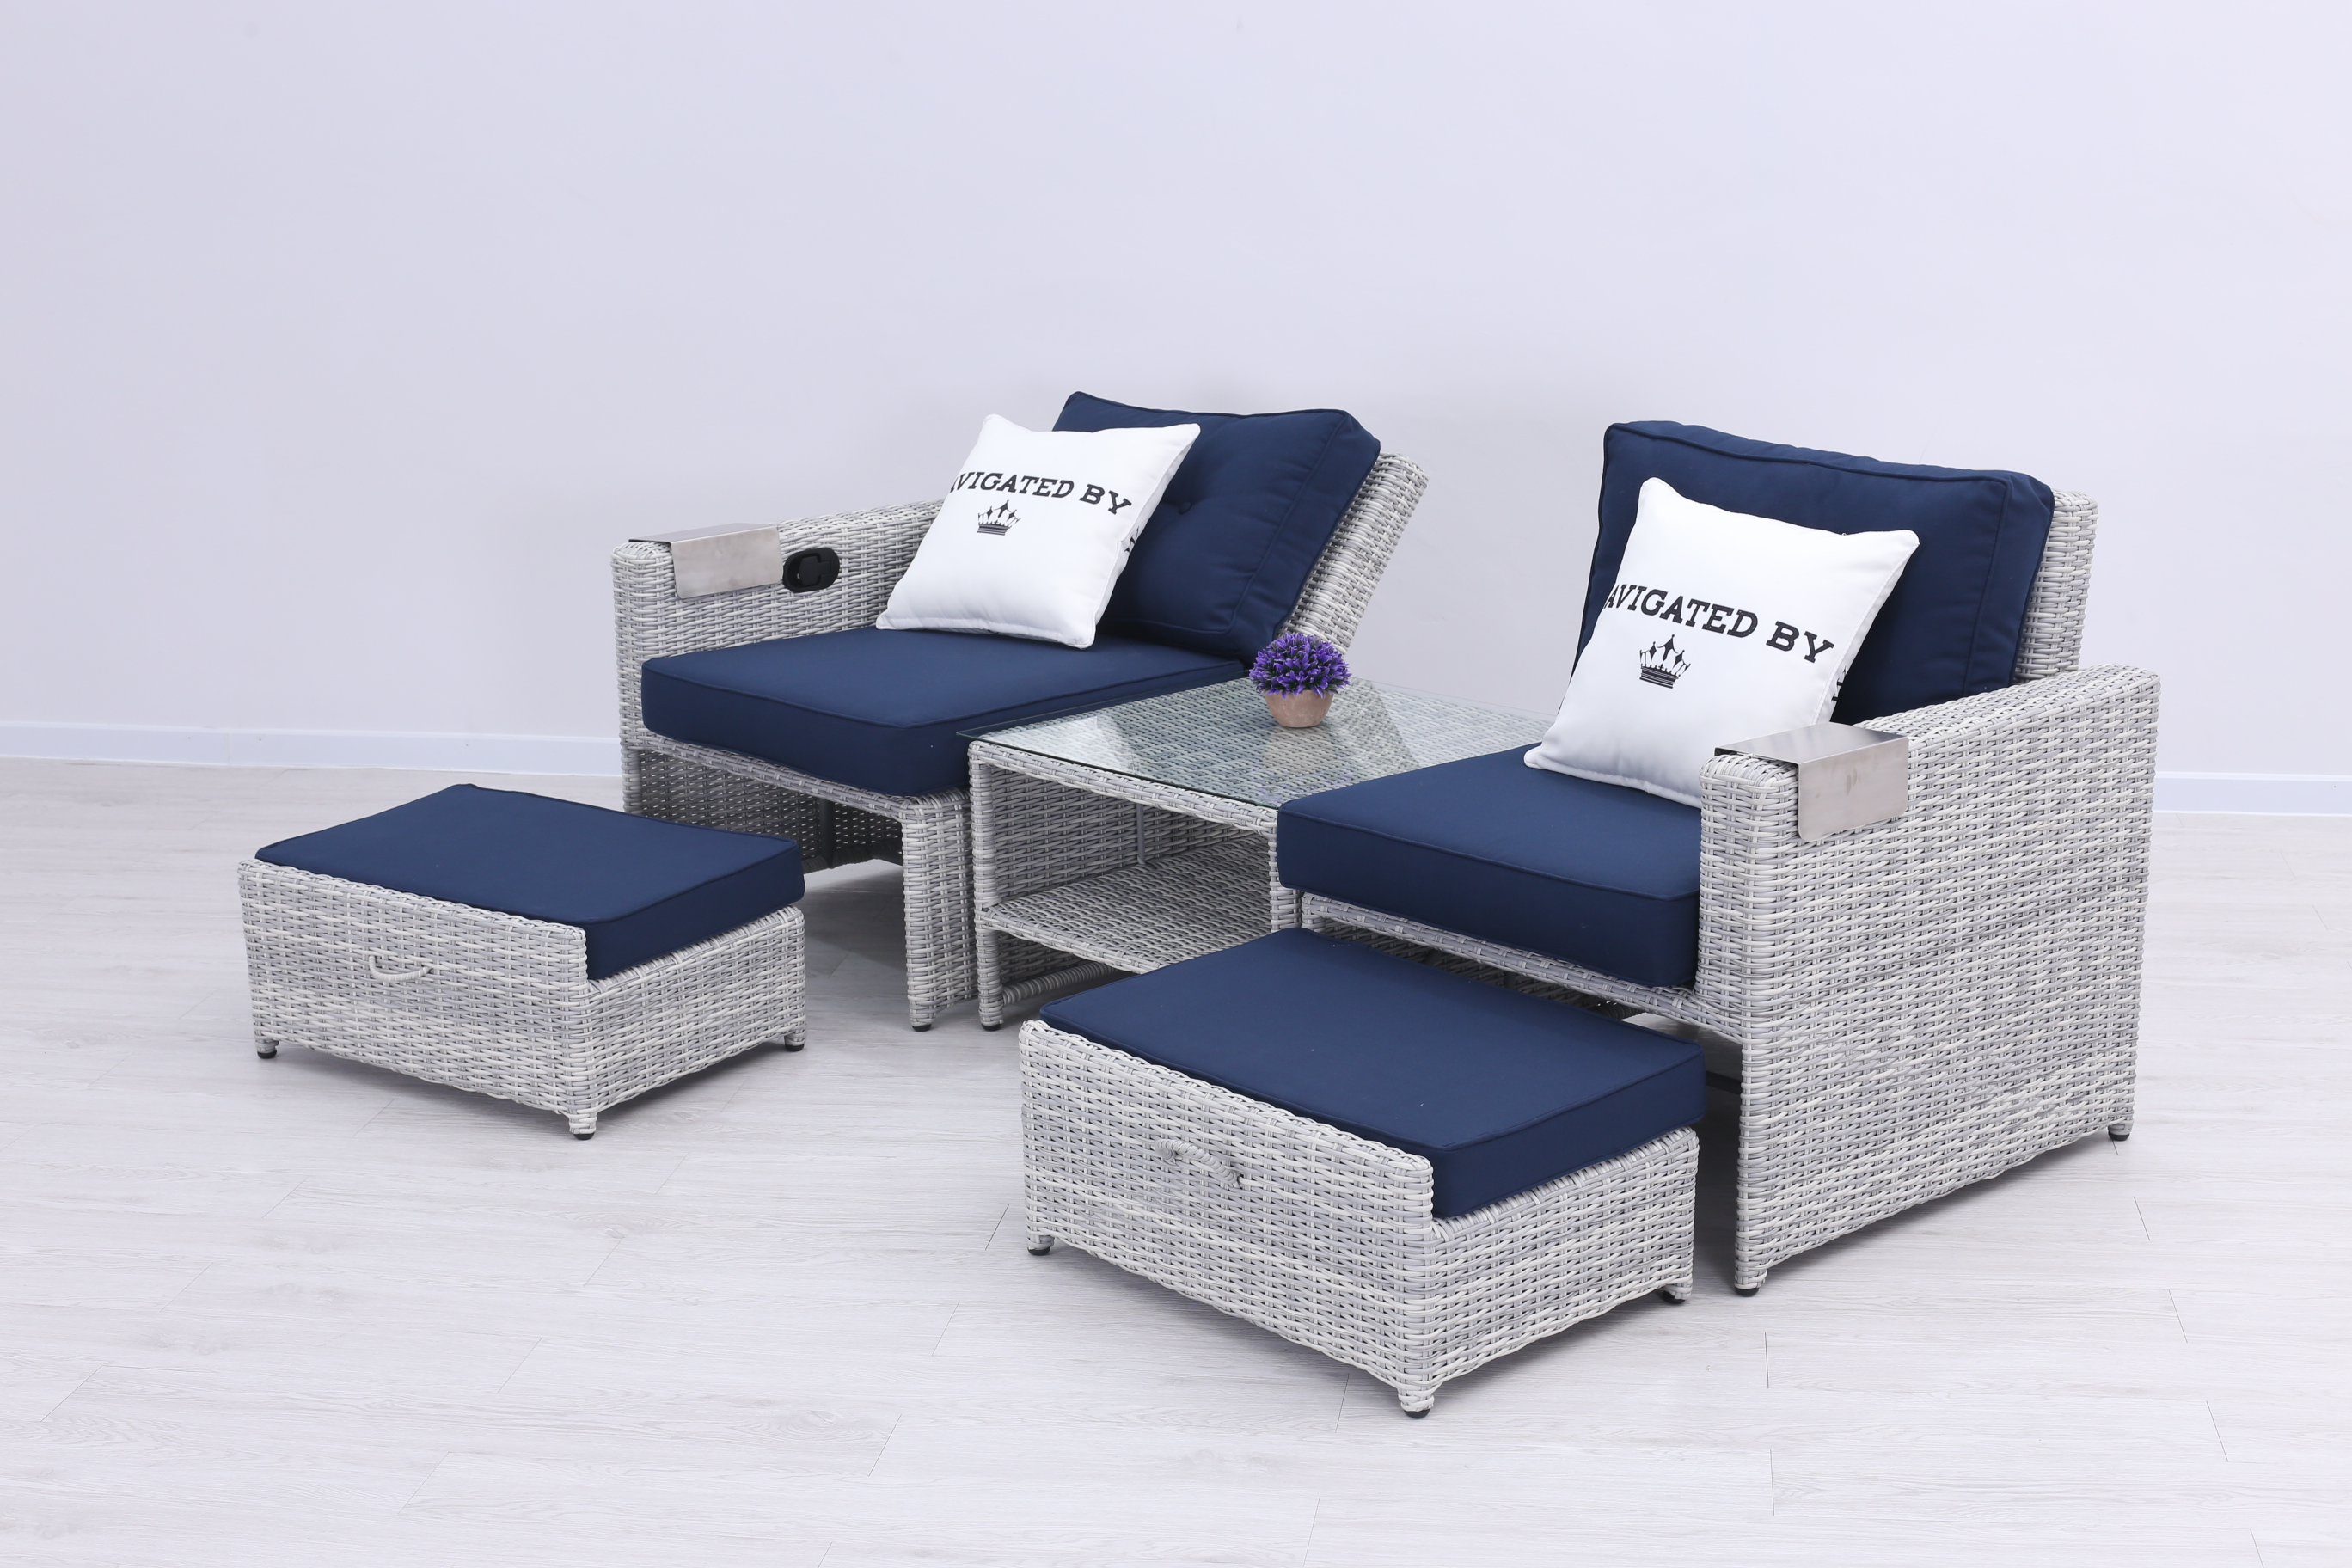 seko polyrattan duo daybed 2 sitzer lounge grau lounge m bel garten gartenm bel. Black Bedroom Furniture Sets. Home Design Ideas